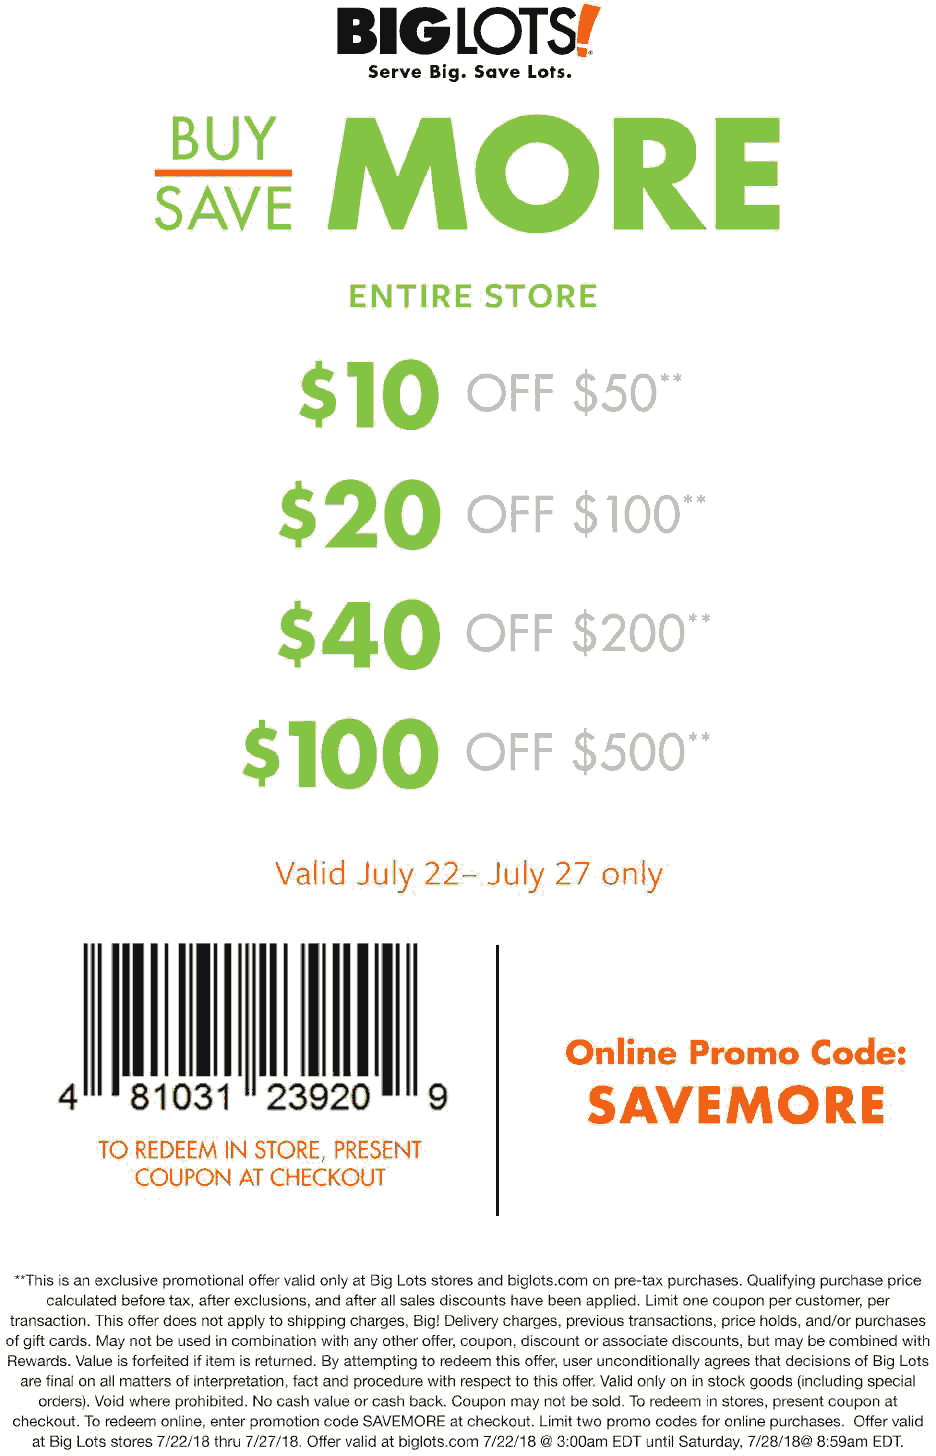 Pinned July 22nd 10 Off 50 More At Biglots Or Online Via Promo Code Savemore Thecouponsapp Promo Codes Online Shopping Coupons Big Lots